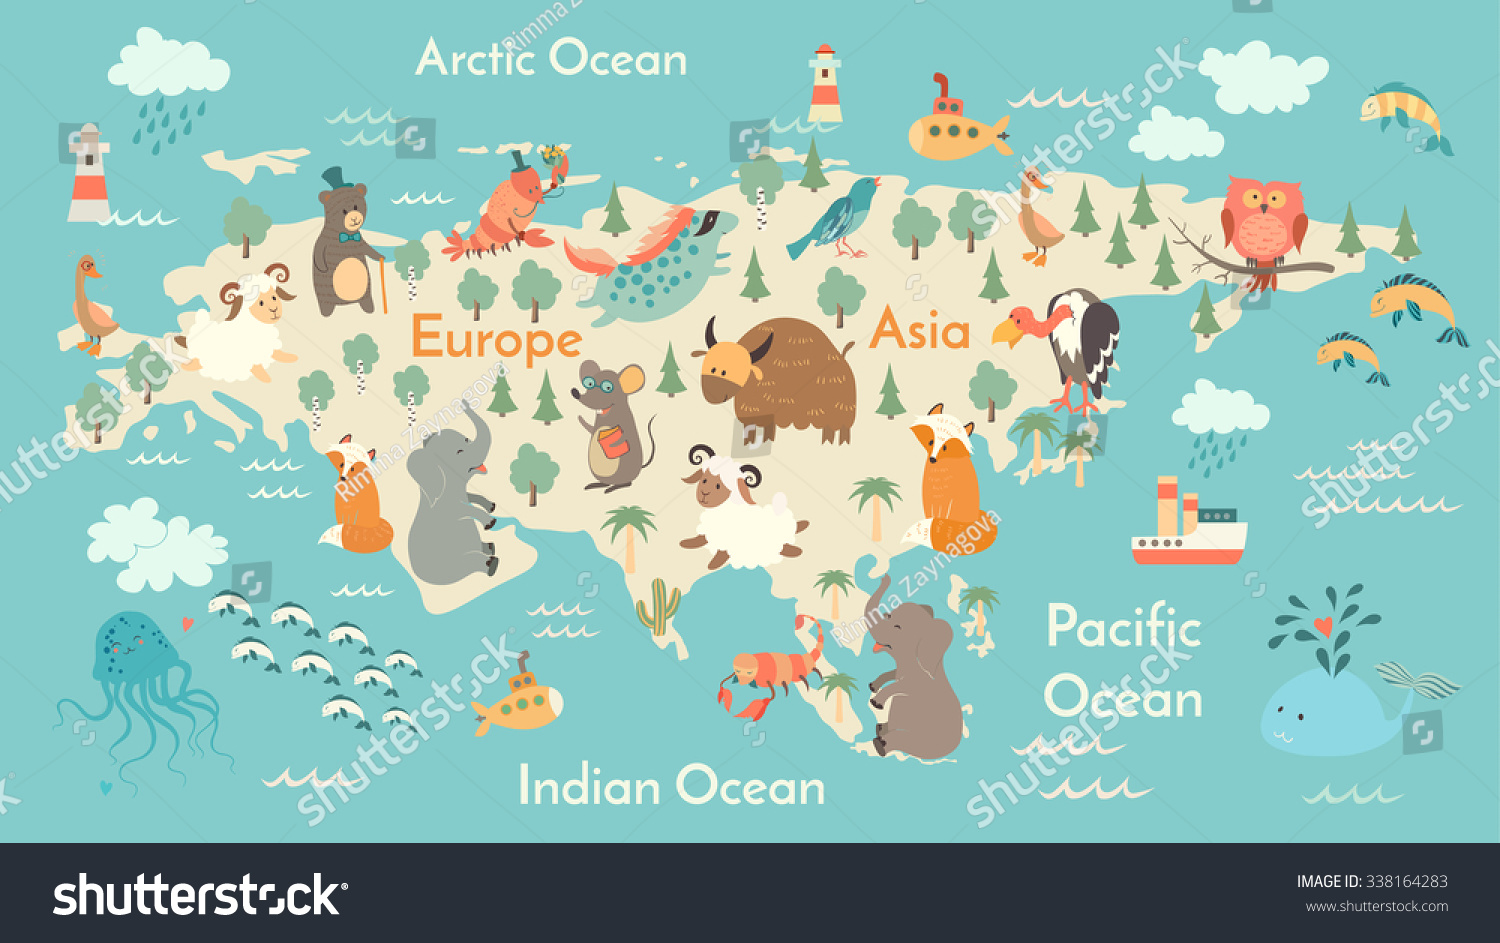 Royaltyfree Animals World Map Eurasia Eurasia Map - Continents map for kids